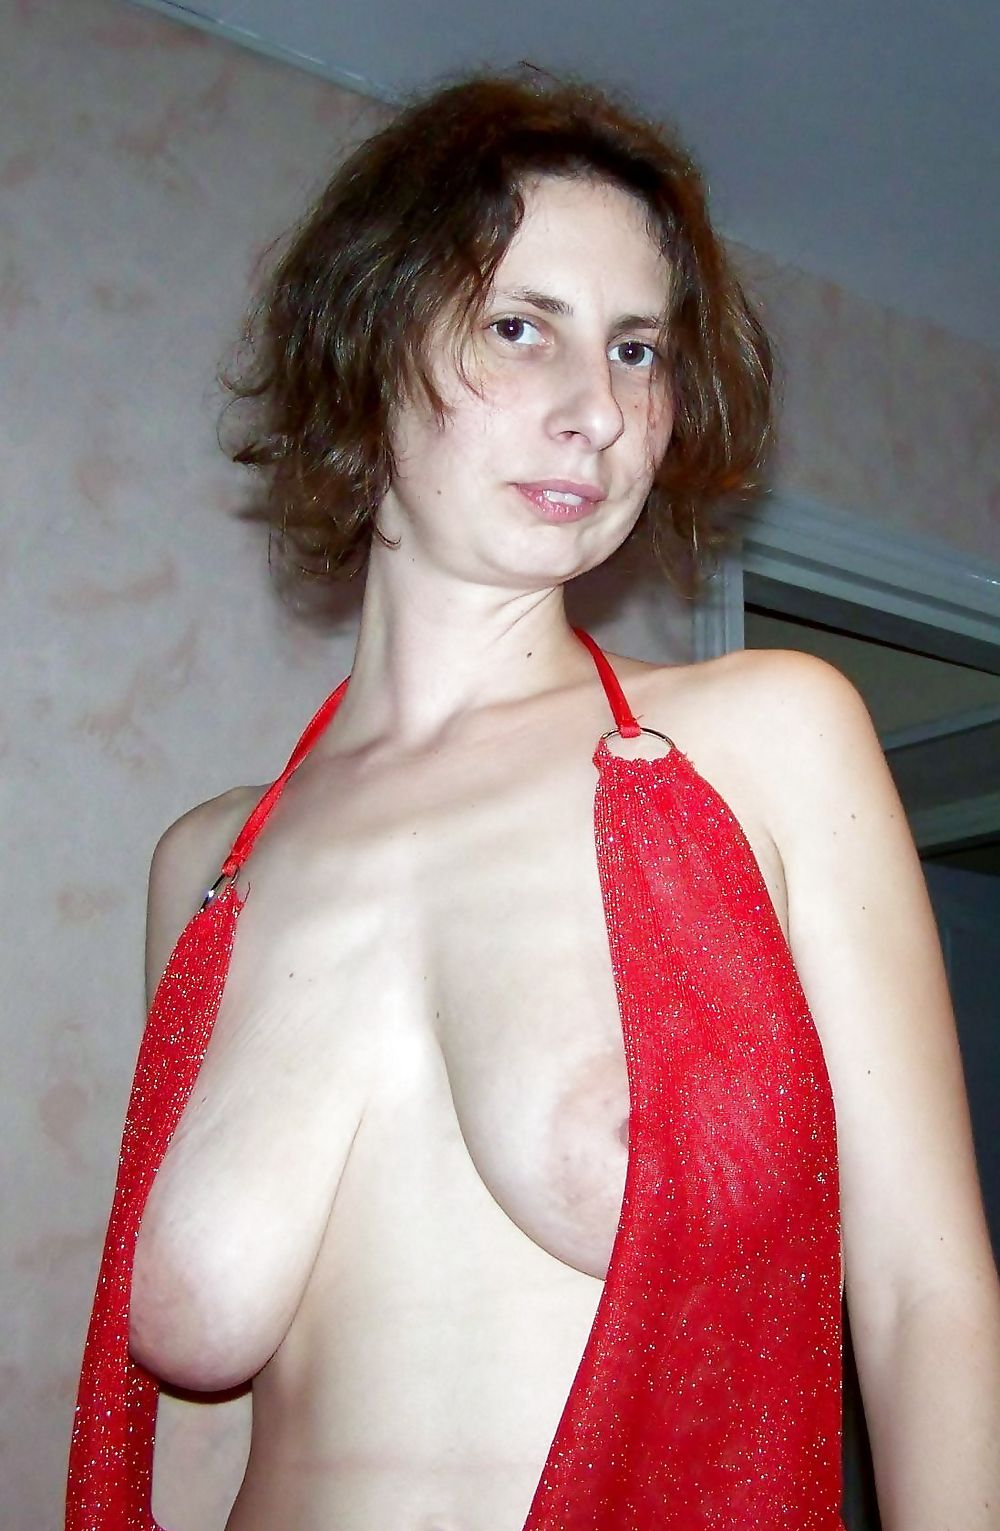 over-saggy-breasts-pictures-sexy-nude-girls-licking-pussy